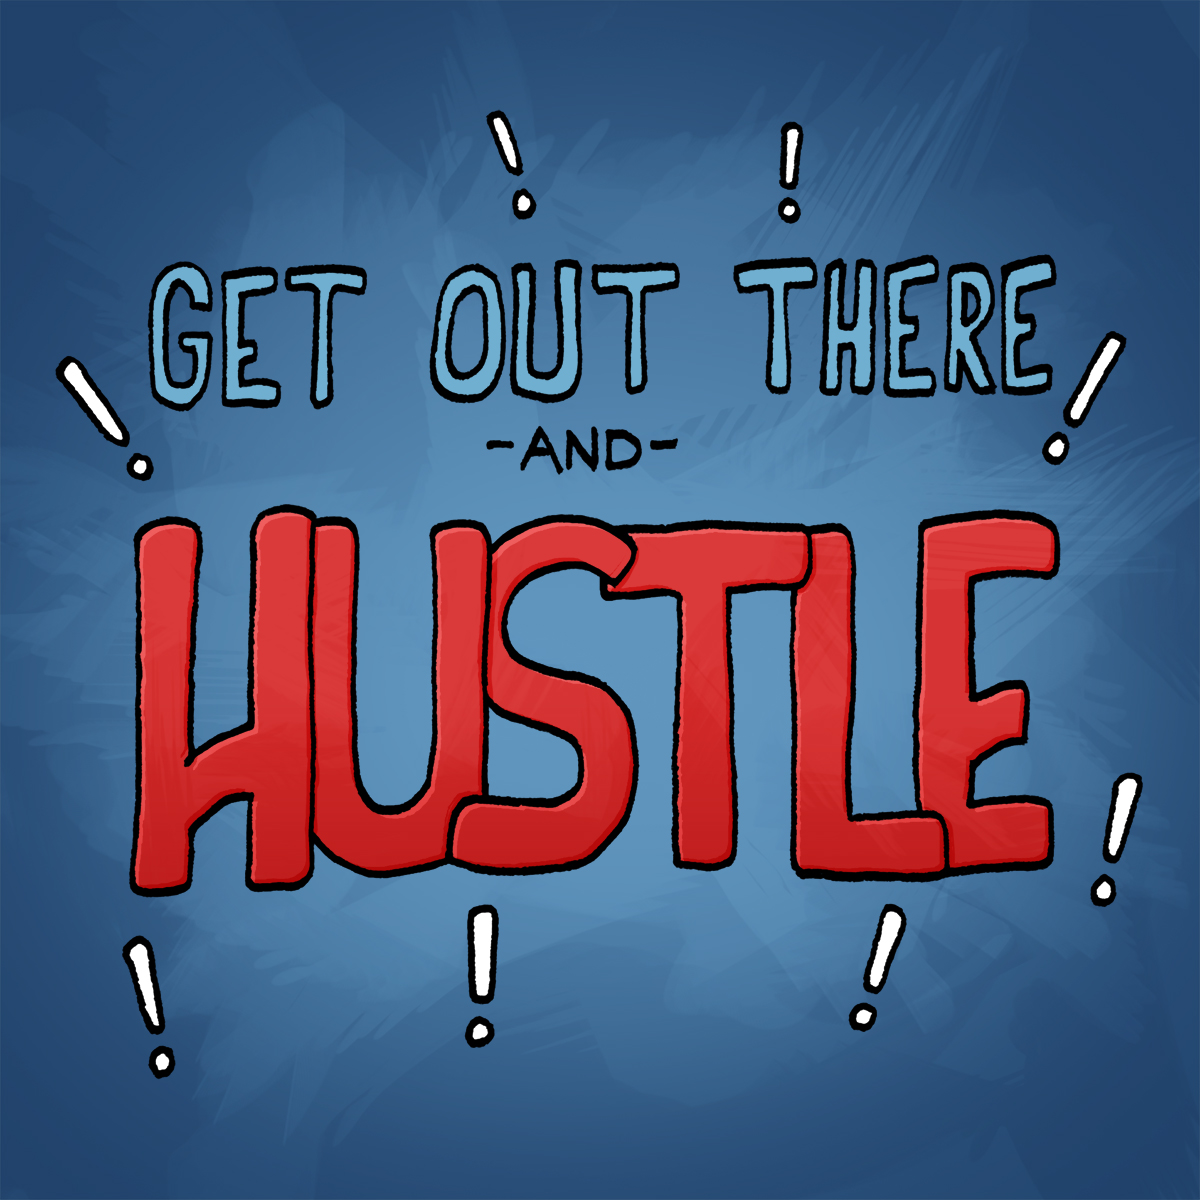 Get out there and hustle.jpg